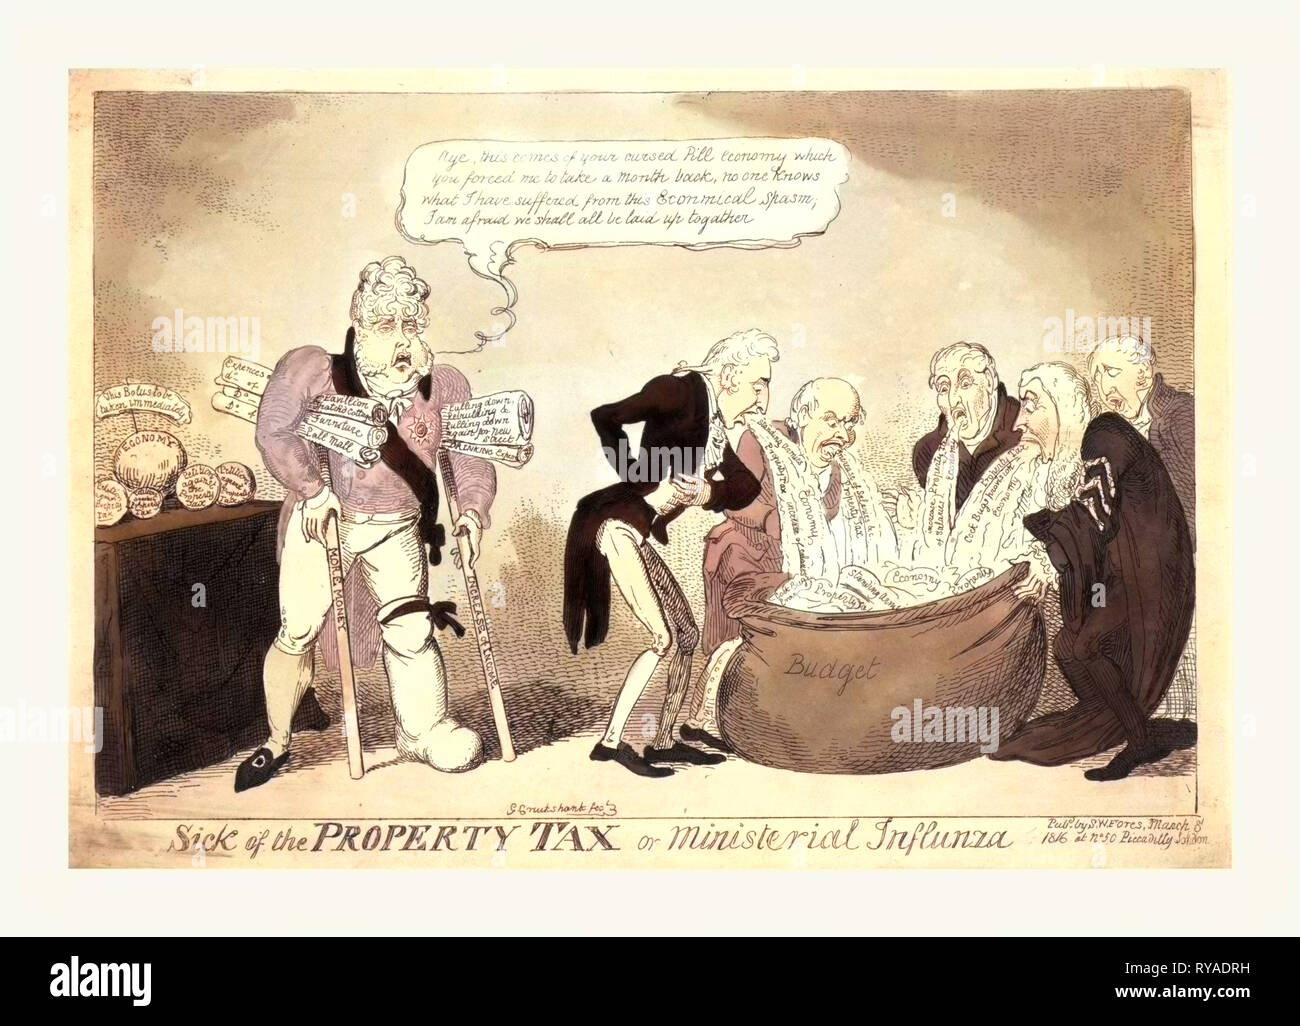 Sick of the Property Tax or Ministerial Influnza, Cruikshank, George, 1792-1878, Artist, Engraving 1816, Ministers, Among Them Vansittart and Castlereagh, Vomiting Taxes Into a Large Bag Labeled Budget. The Prince Regent Stands Nearby, Supported on Crutches Labeled More Money and Increase in Income, Holding Rolled Documents Under His Arms Labeled with Descriptions of Some of His Extravagant Expenses - Stock Image